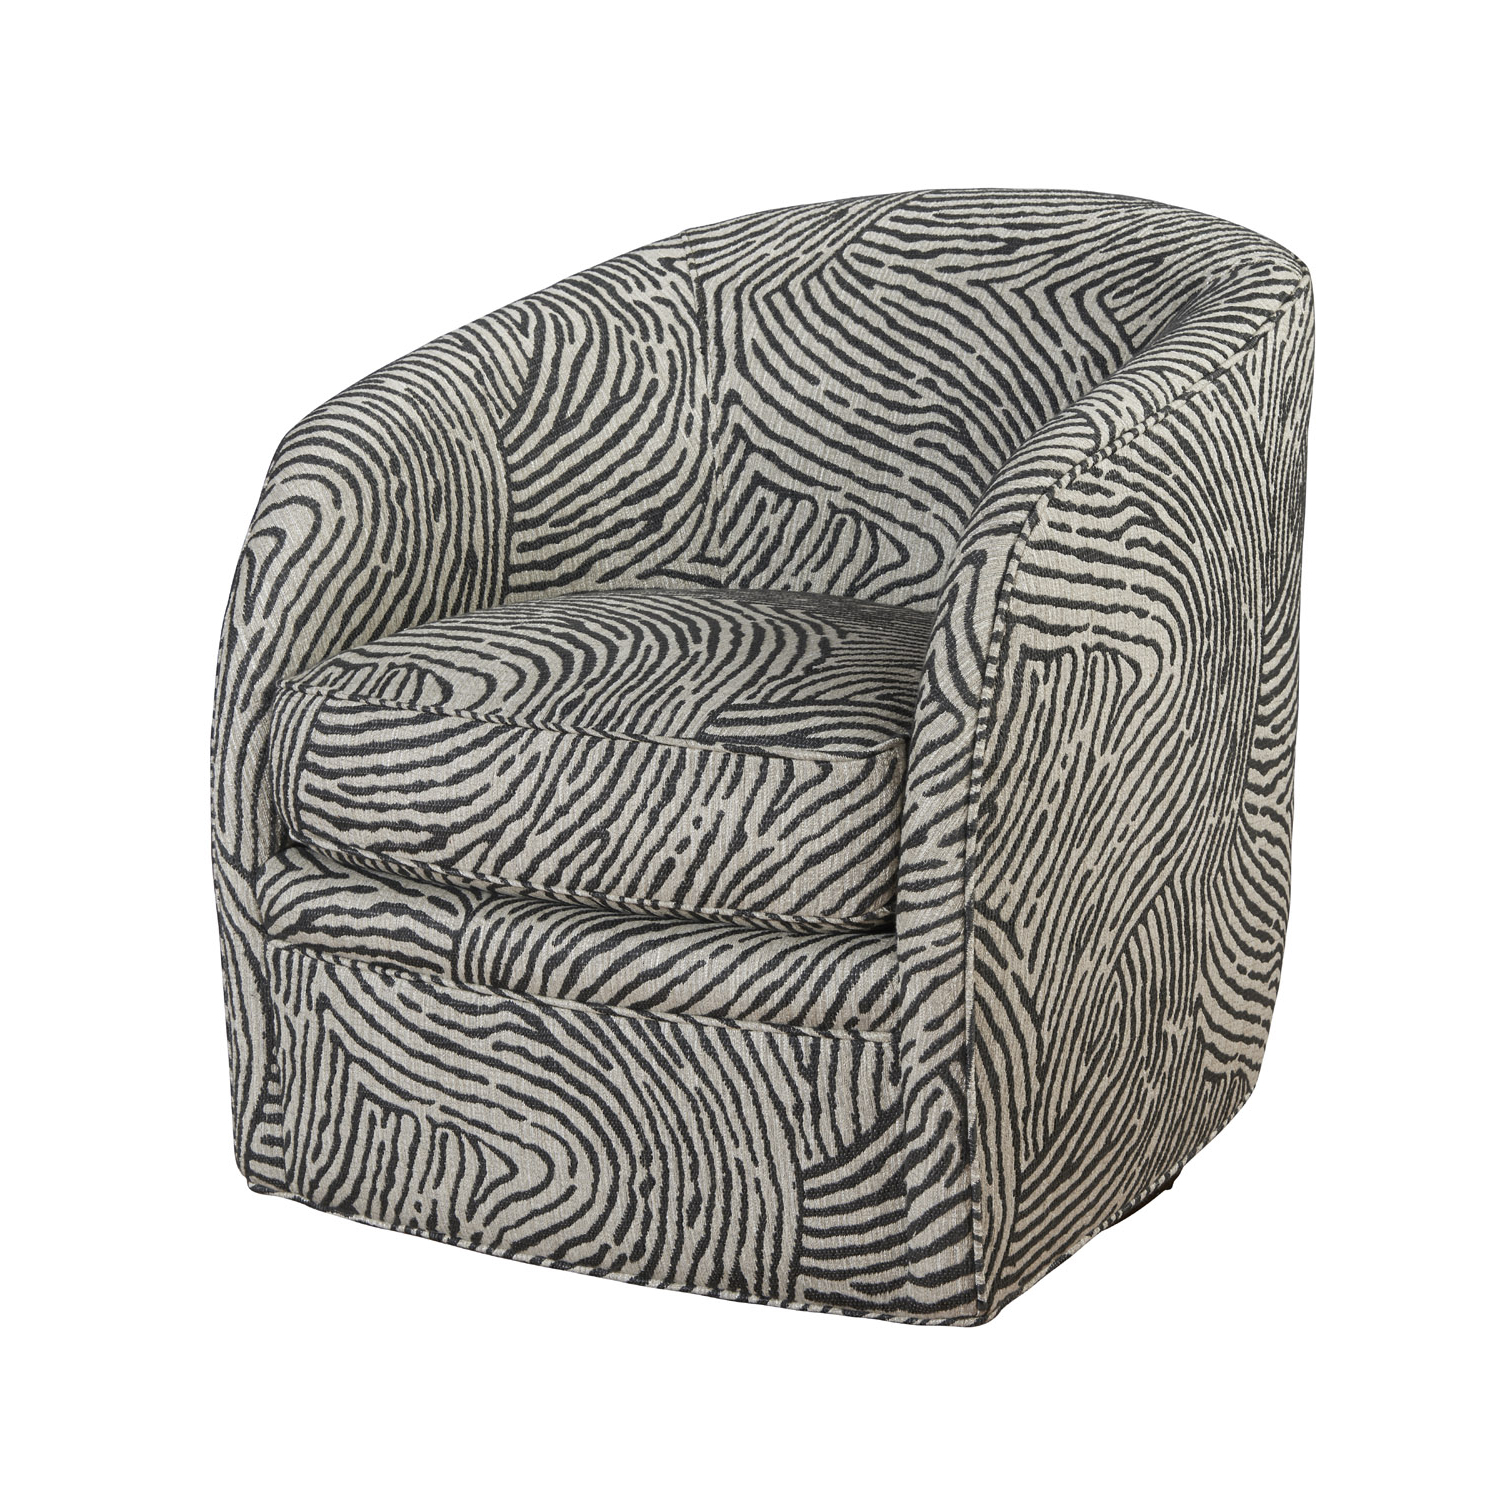 Charcoal Swivel Chairs In Most Recent Francesca Swivel Chair – Sunniva Charcoal (Gallery 20 of 20)